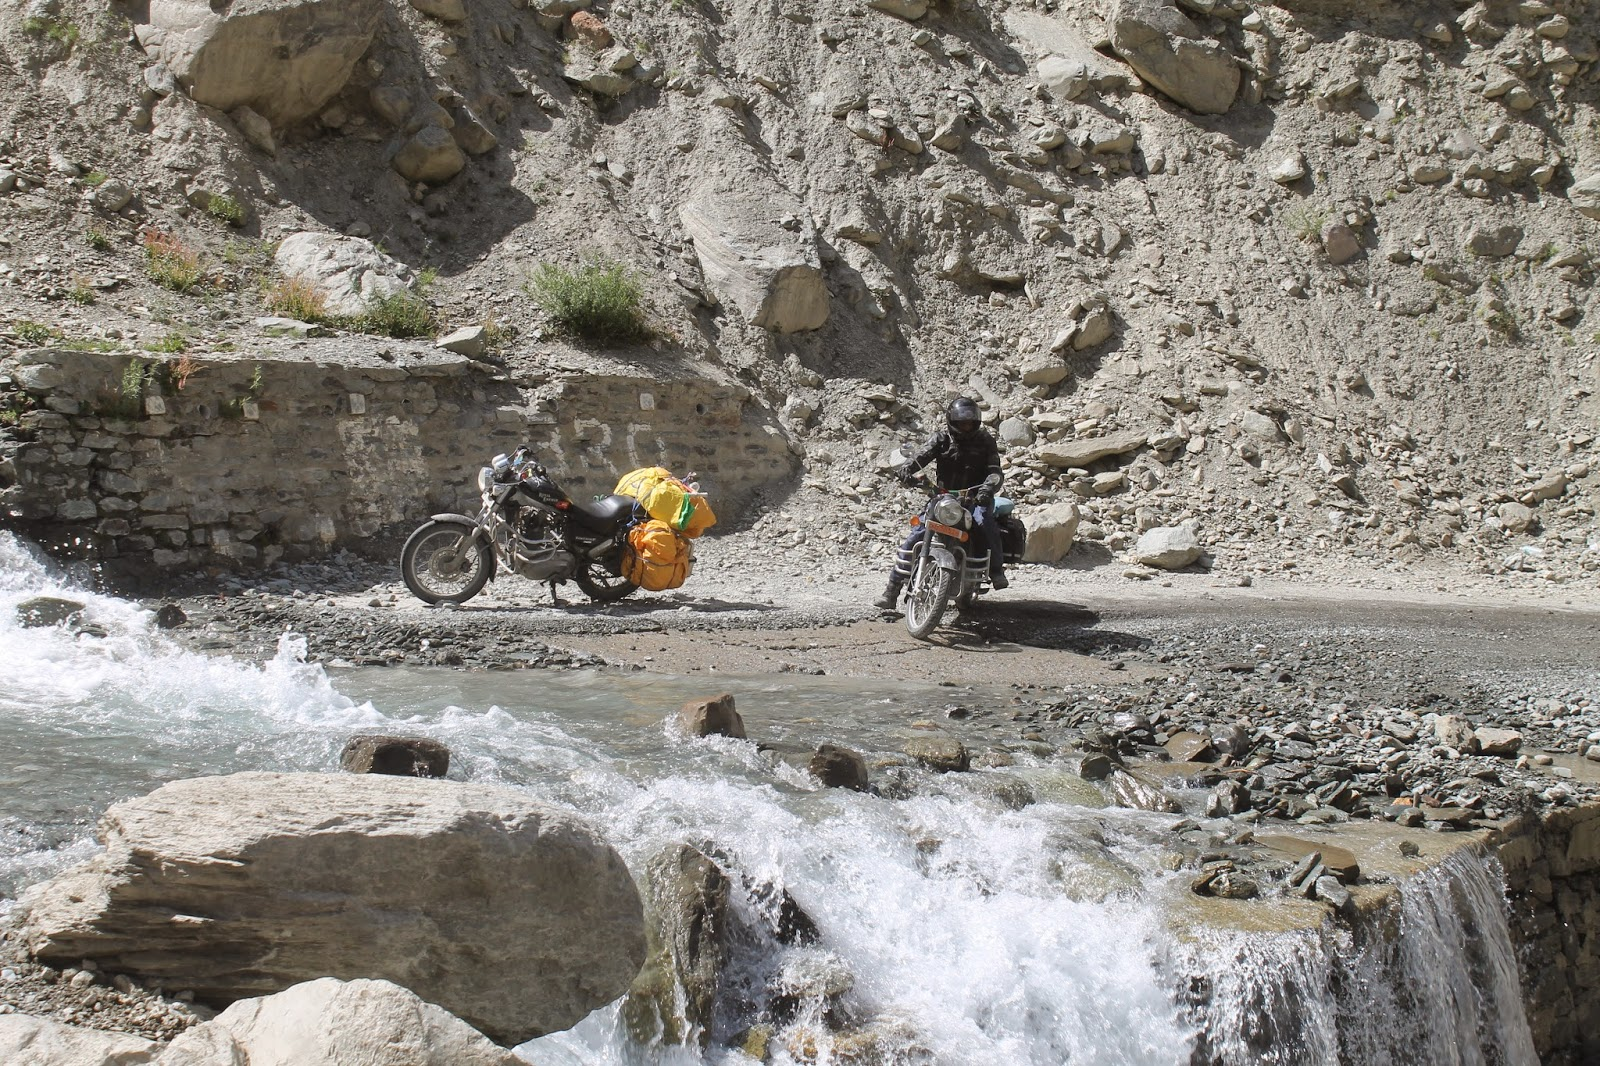 Biking in ladakh